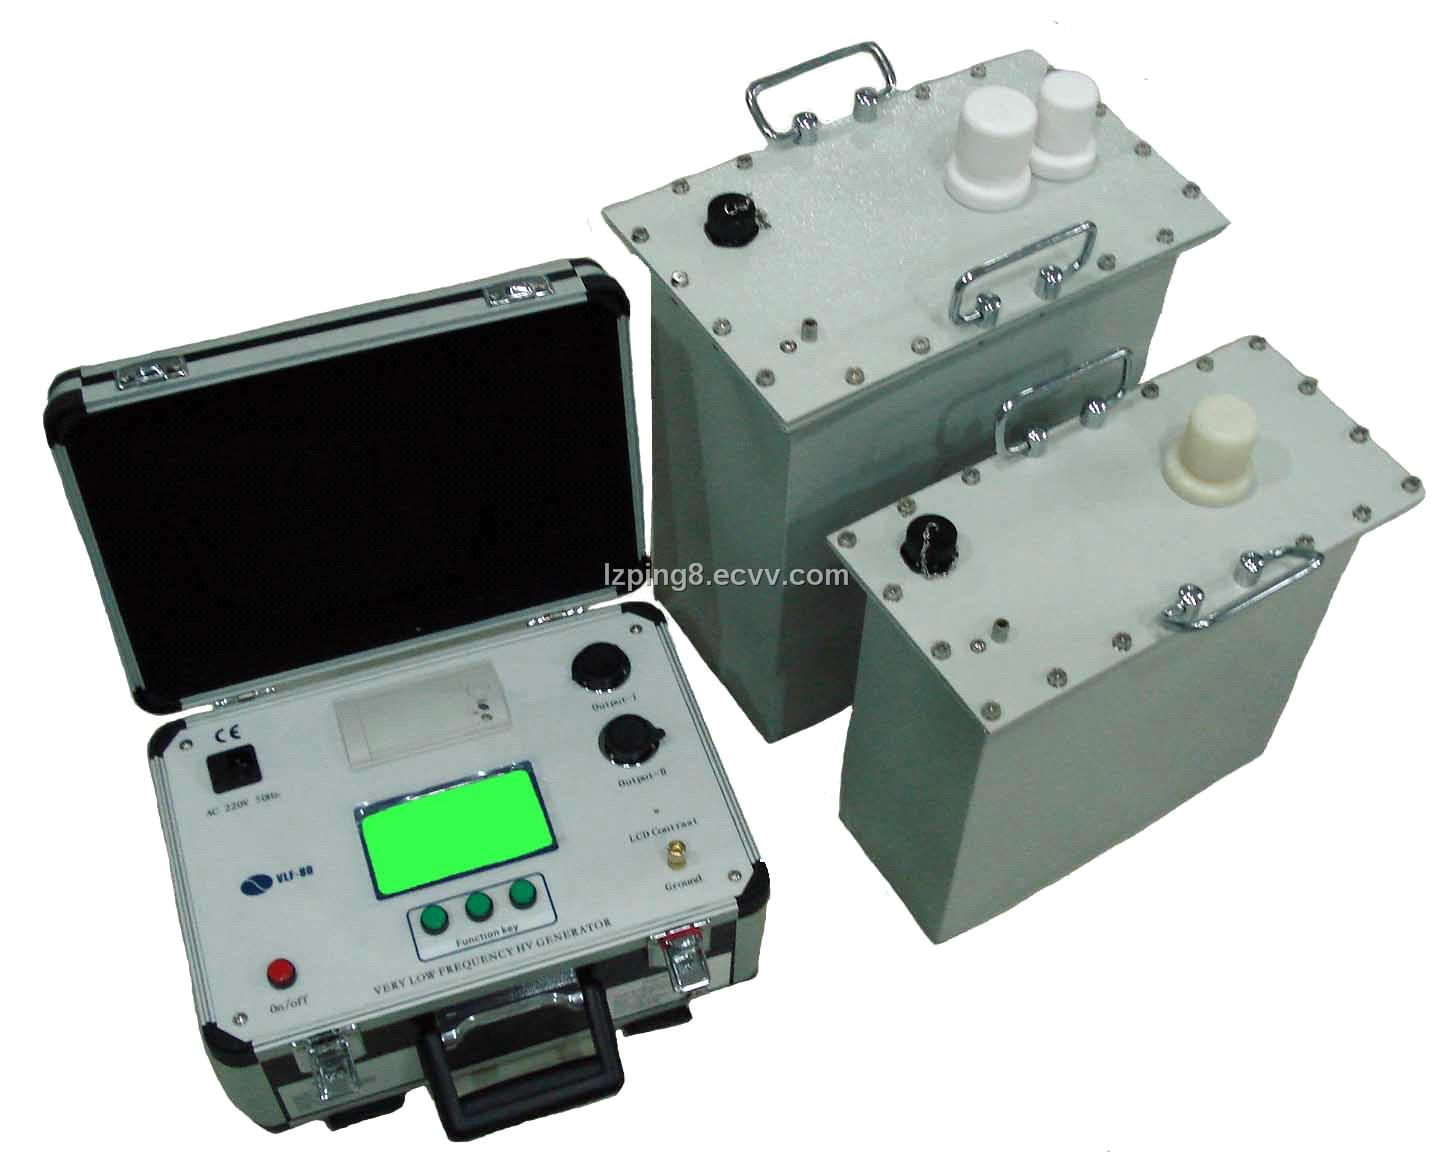 Low Voltage Hipot Tester : Very low frequemcy vlf hipot generator tester